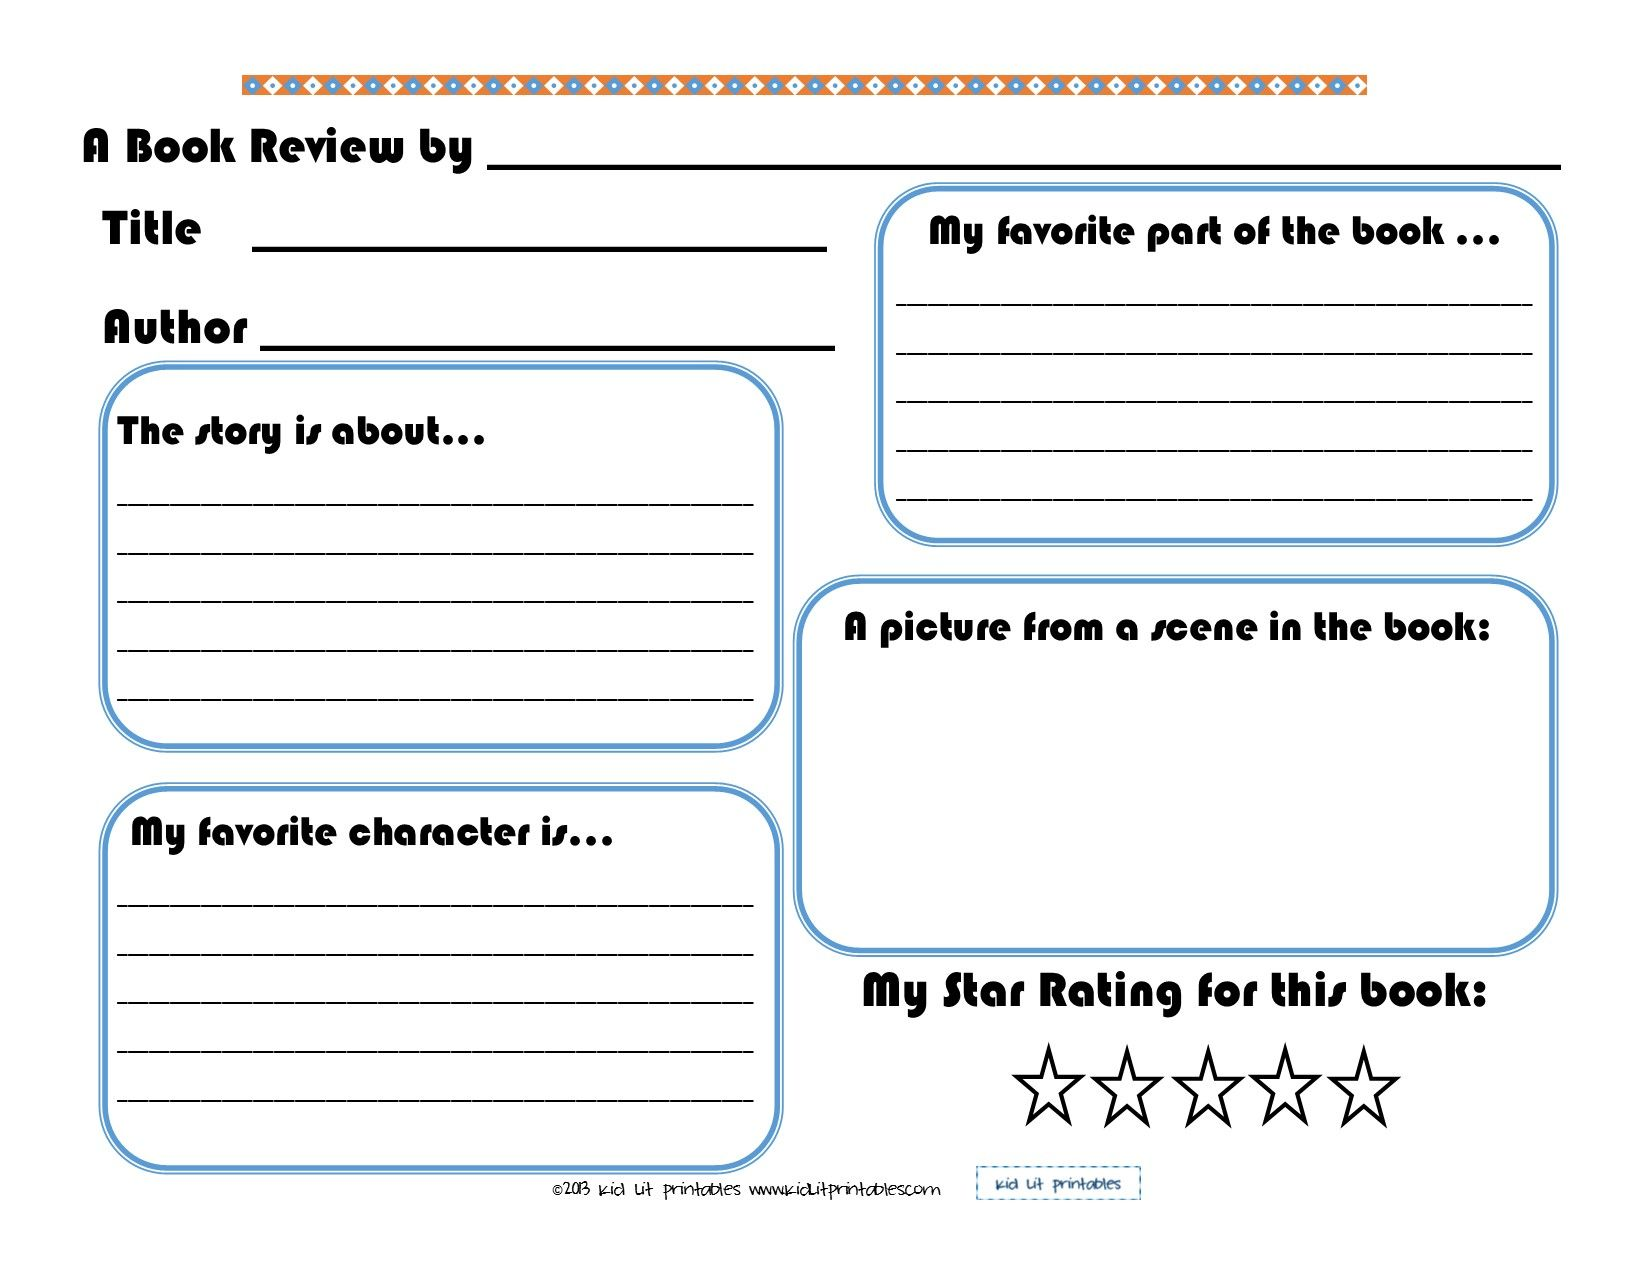 small resolution of 3 free printable book report forms (and more) for different ages. Enjoy!   Book  report templates